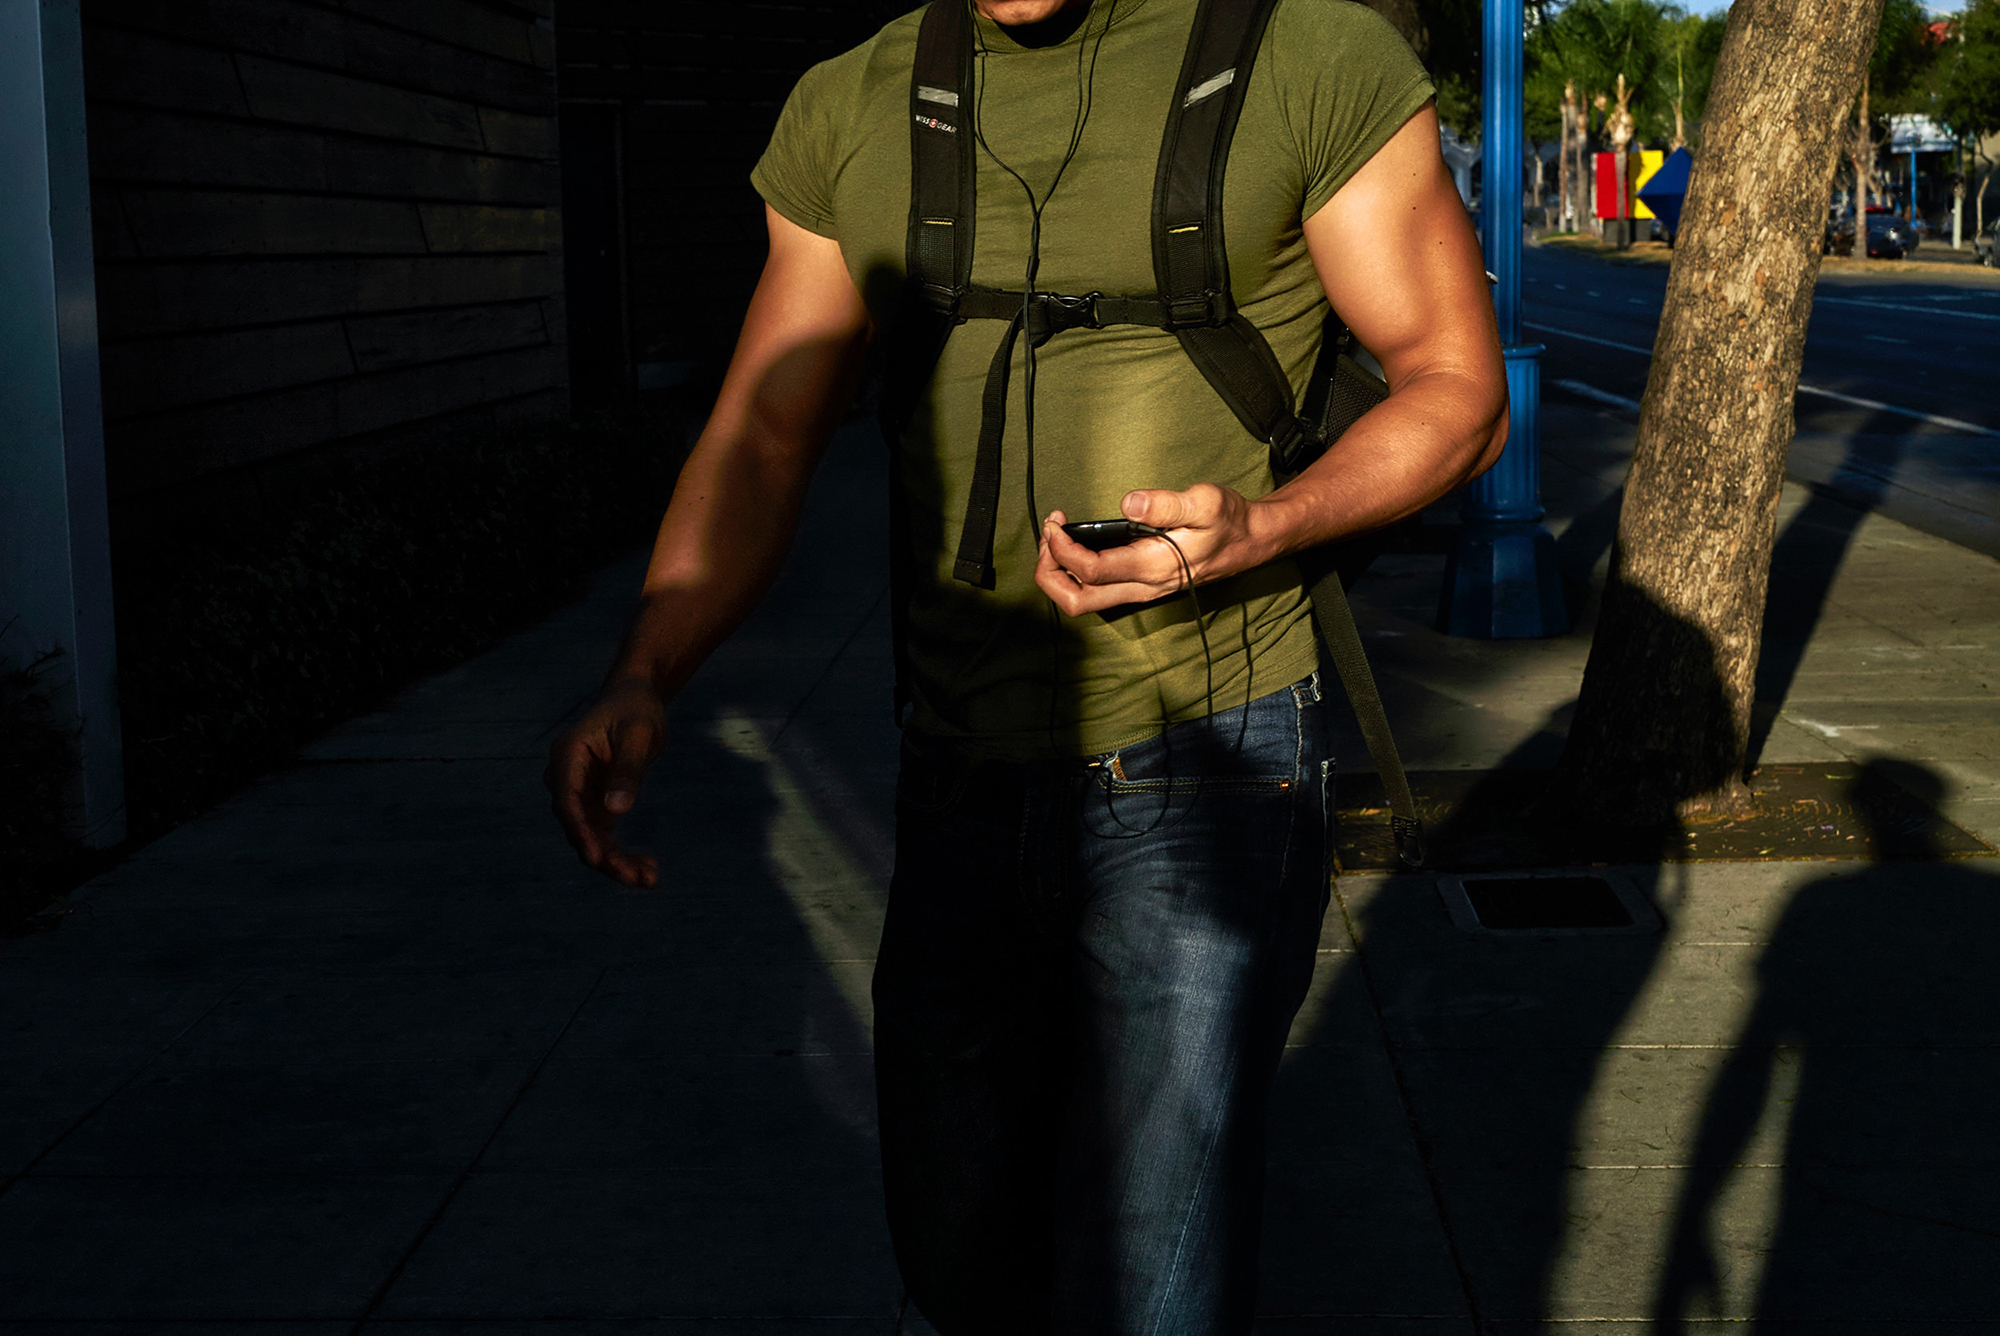 young-man-with-muscles-santa-monica-bus-weho.jpg